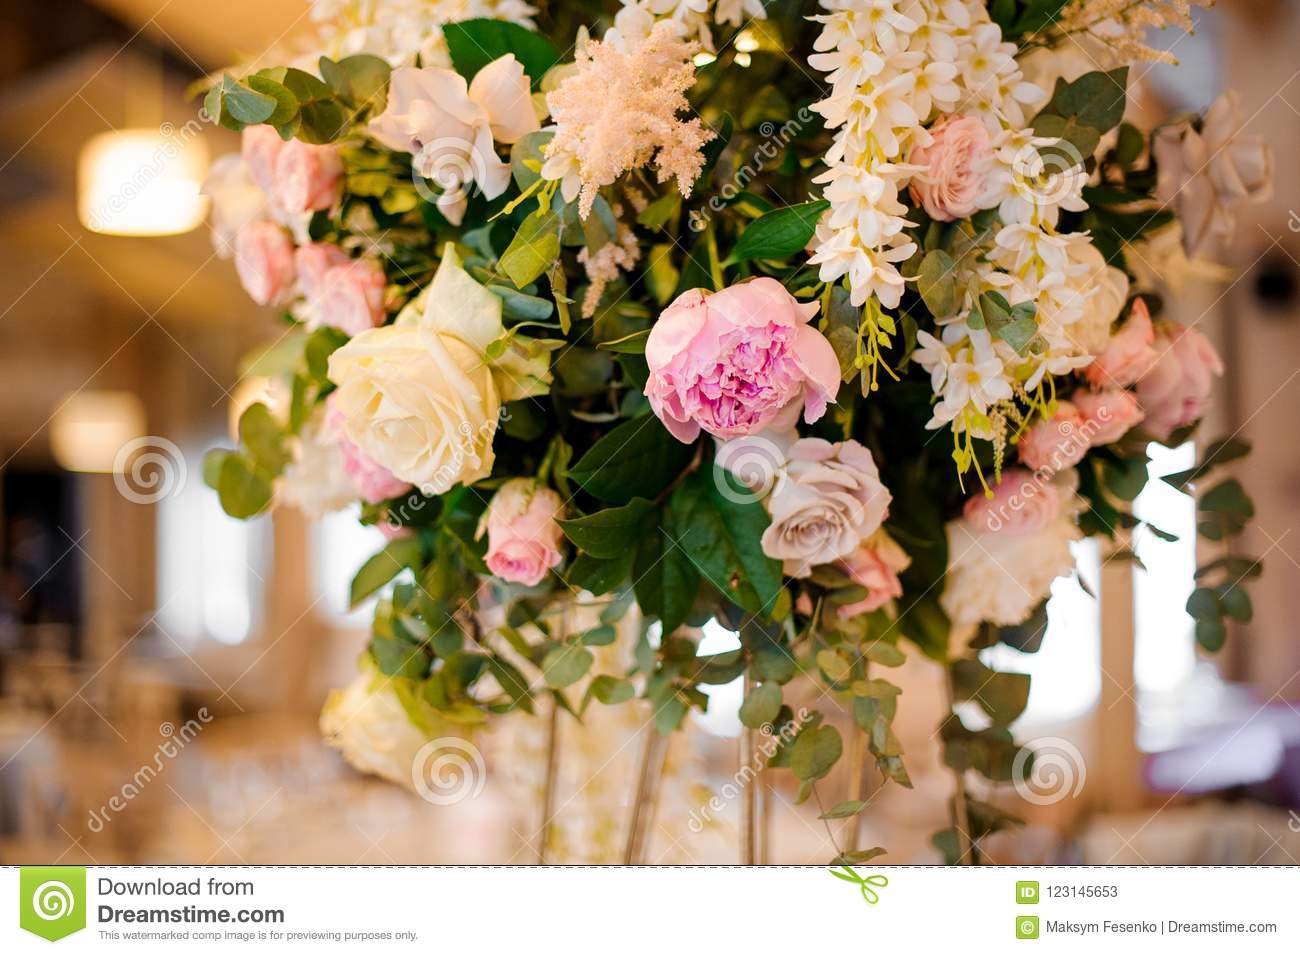 Wedding Decor Bouquet Of Pink Peonies And Roses Stock Image Image